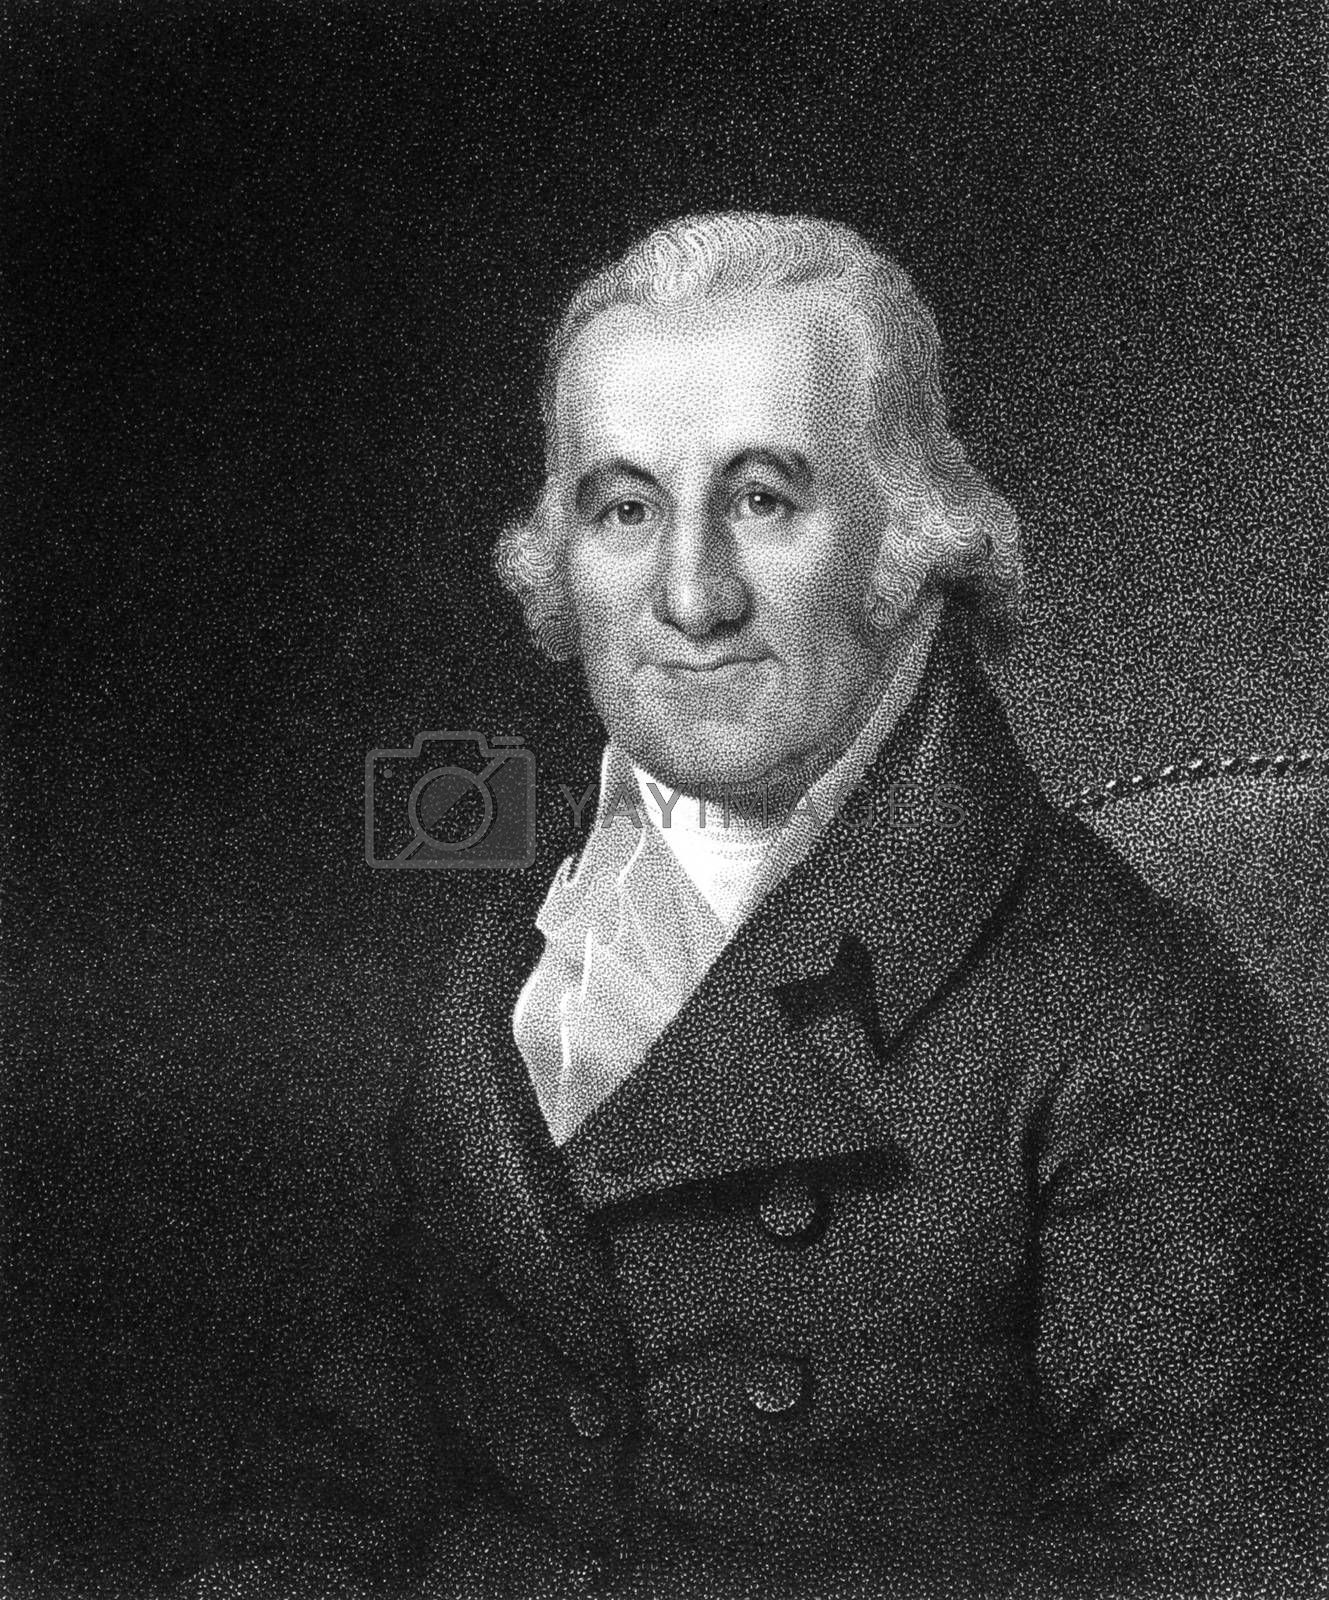 Caspar Wistar (1761-1818) on engraving from 1835.  American physician and anatomist. Engraved by J.B.Longacre and published in''National Portrait Gallery of Distinguished Americans Volume II'',USA,1835.